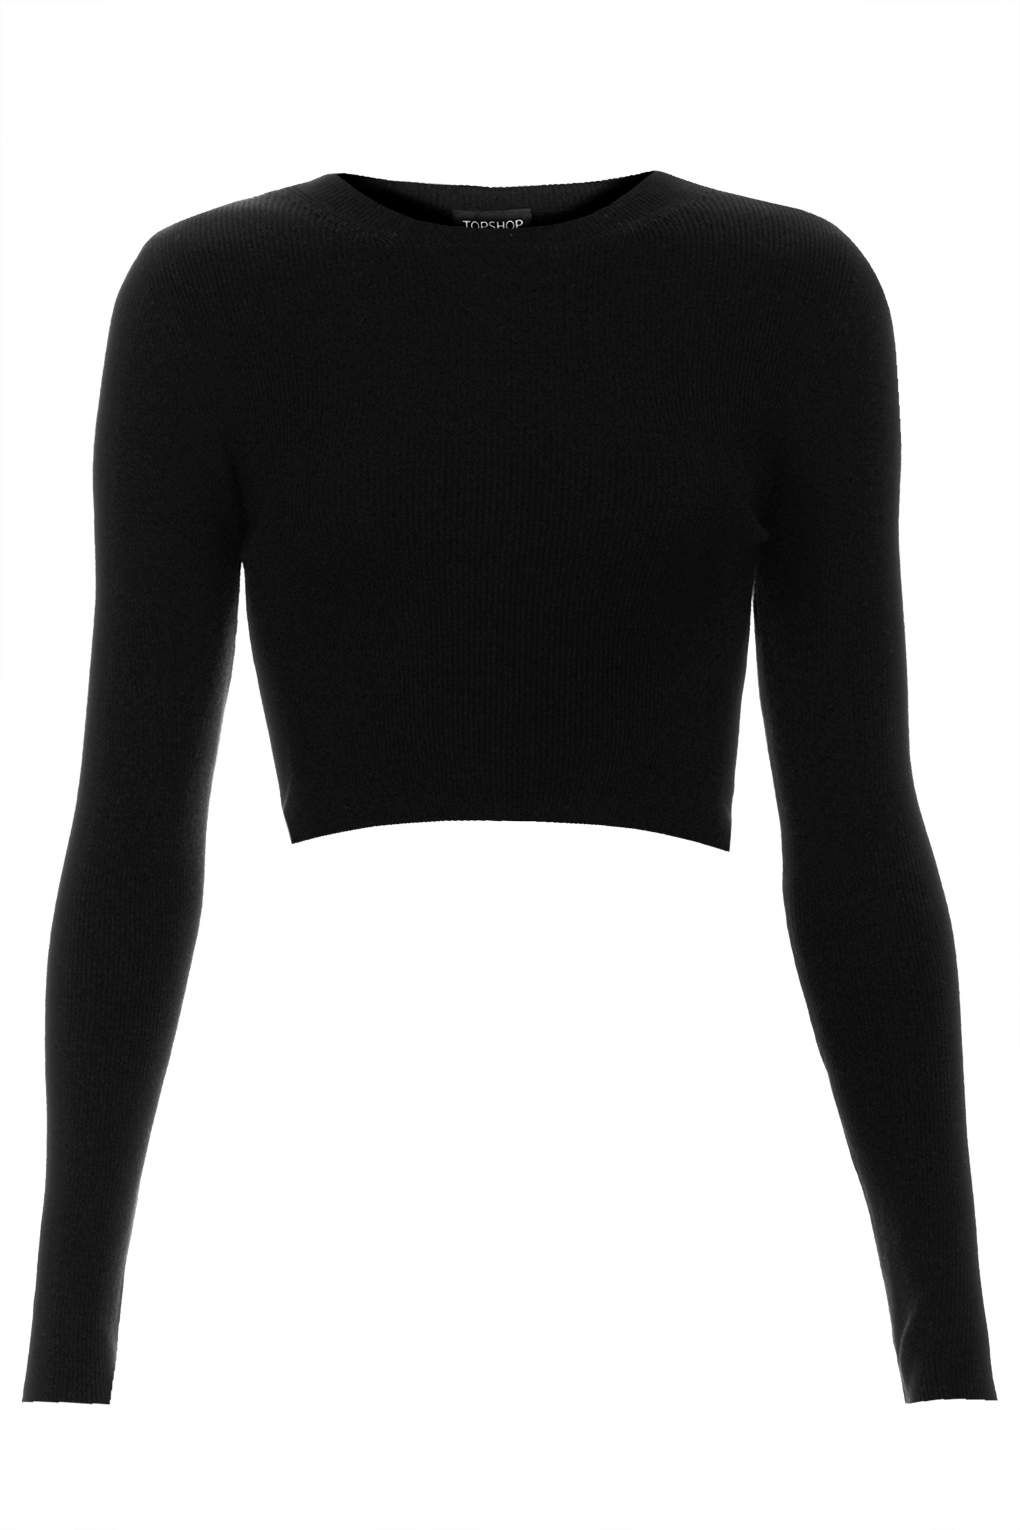 bae739cd75 Rib Crop Top £26 Topshop - Long sleeve crops